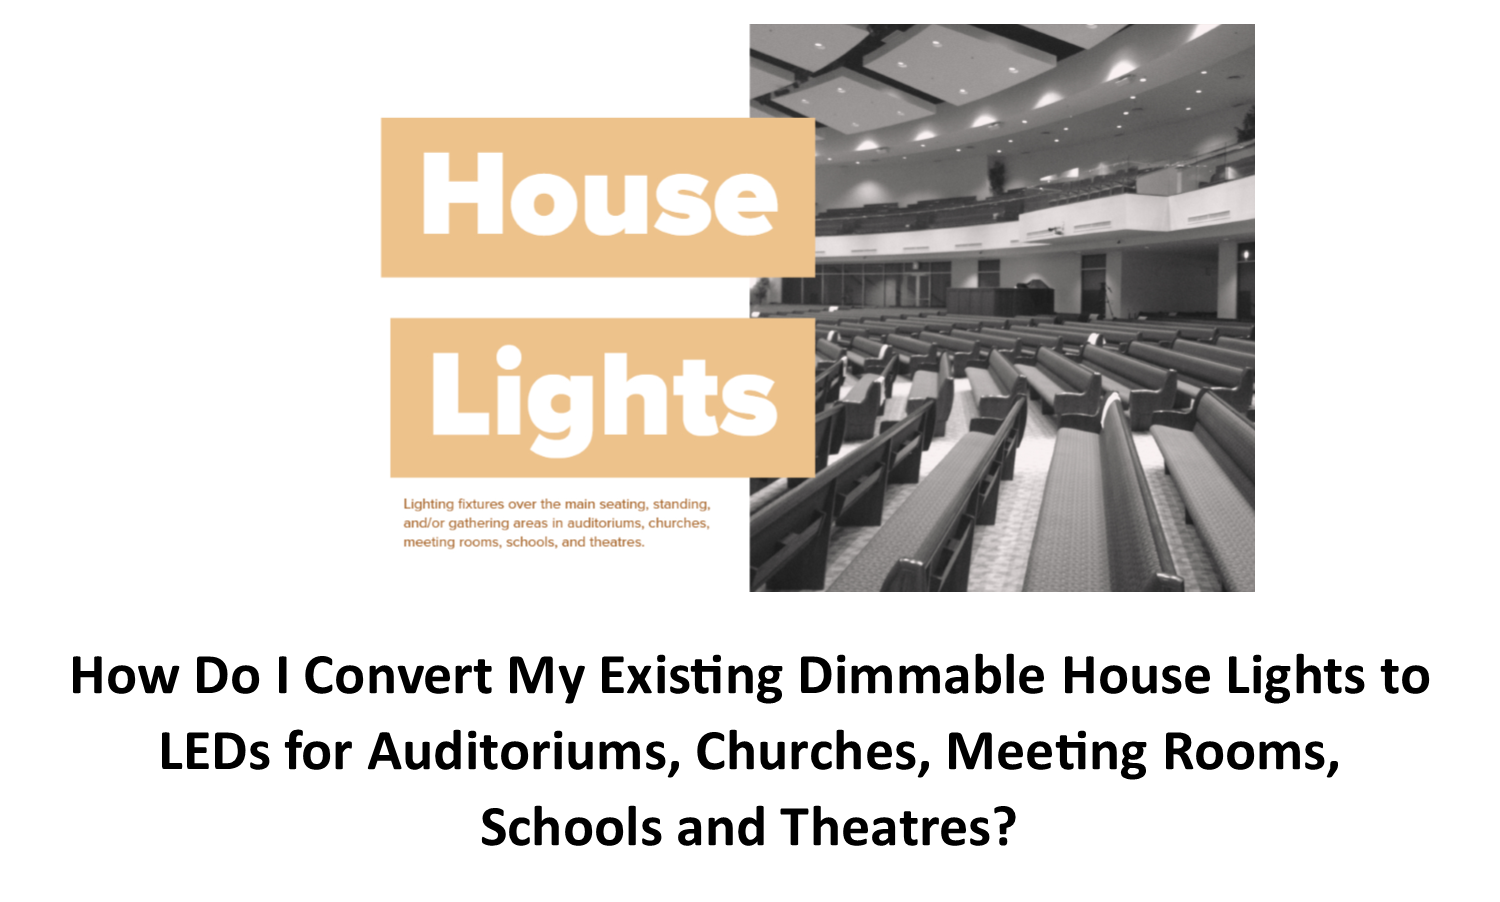 How do I Convert My Existing Dimmable House Lights To LEDs For Auditoriums, Churches, Meeting Rooms, Schools, And Theatres?